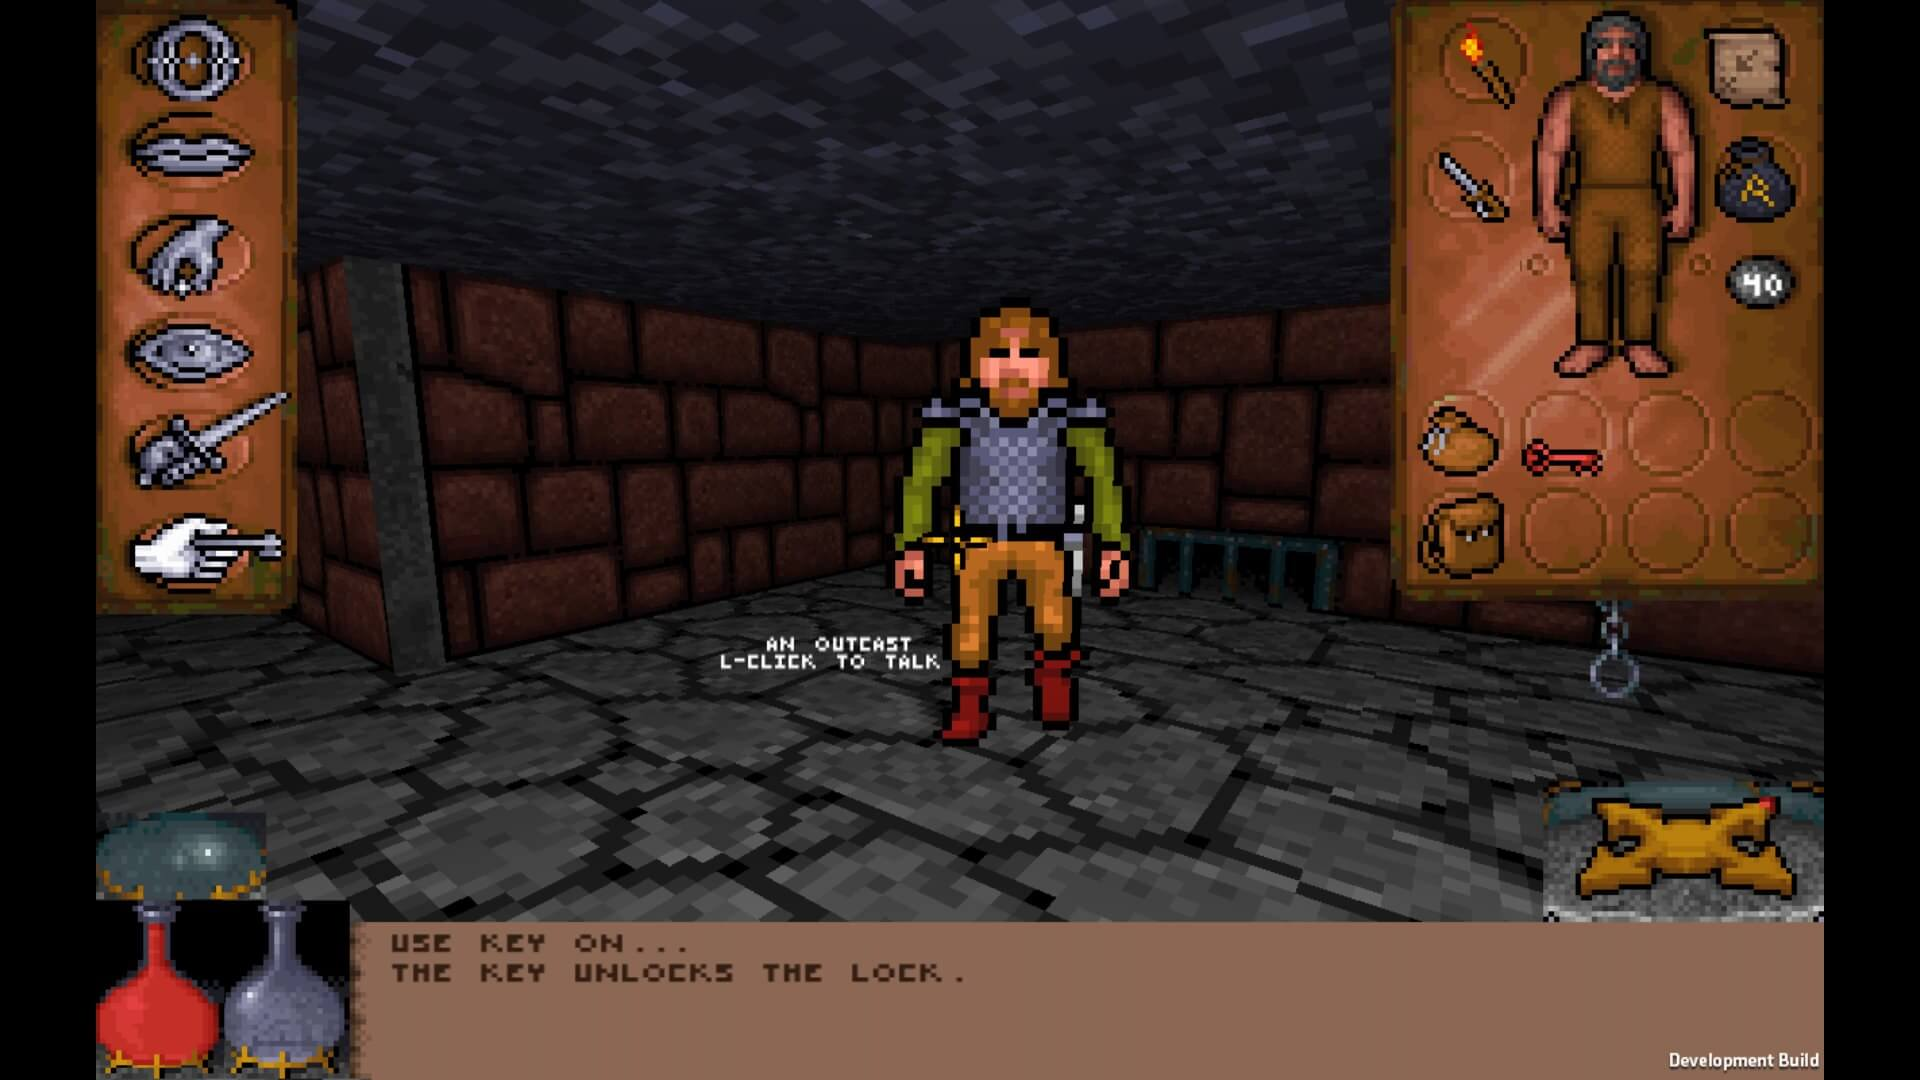 Ultima Underworld has been source ported to Unity Engine, supports high resolutions and mouse look